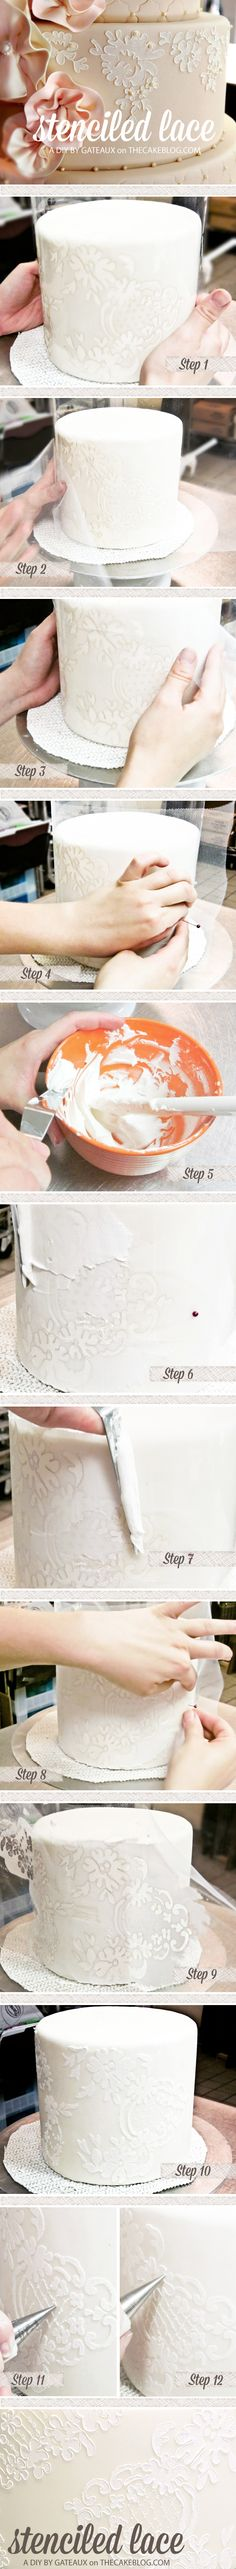 Fantastic Lace Stencil tutorial = showing how to place Tulle over the stencil before applying the royal icing for that 'real' lace effect.